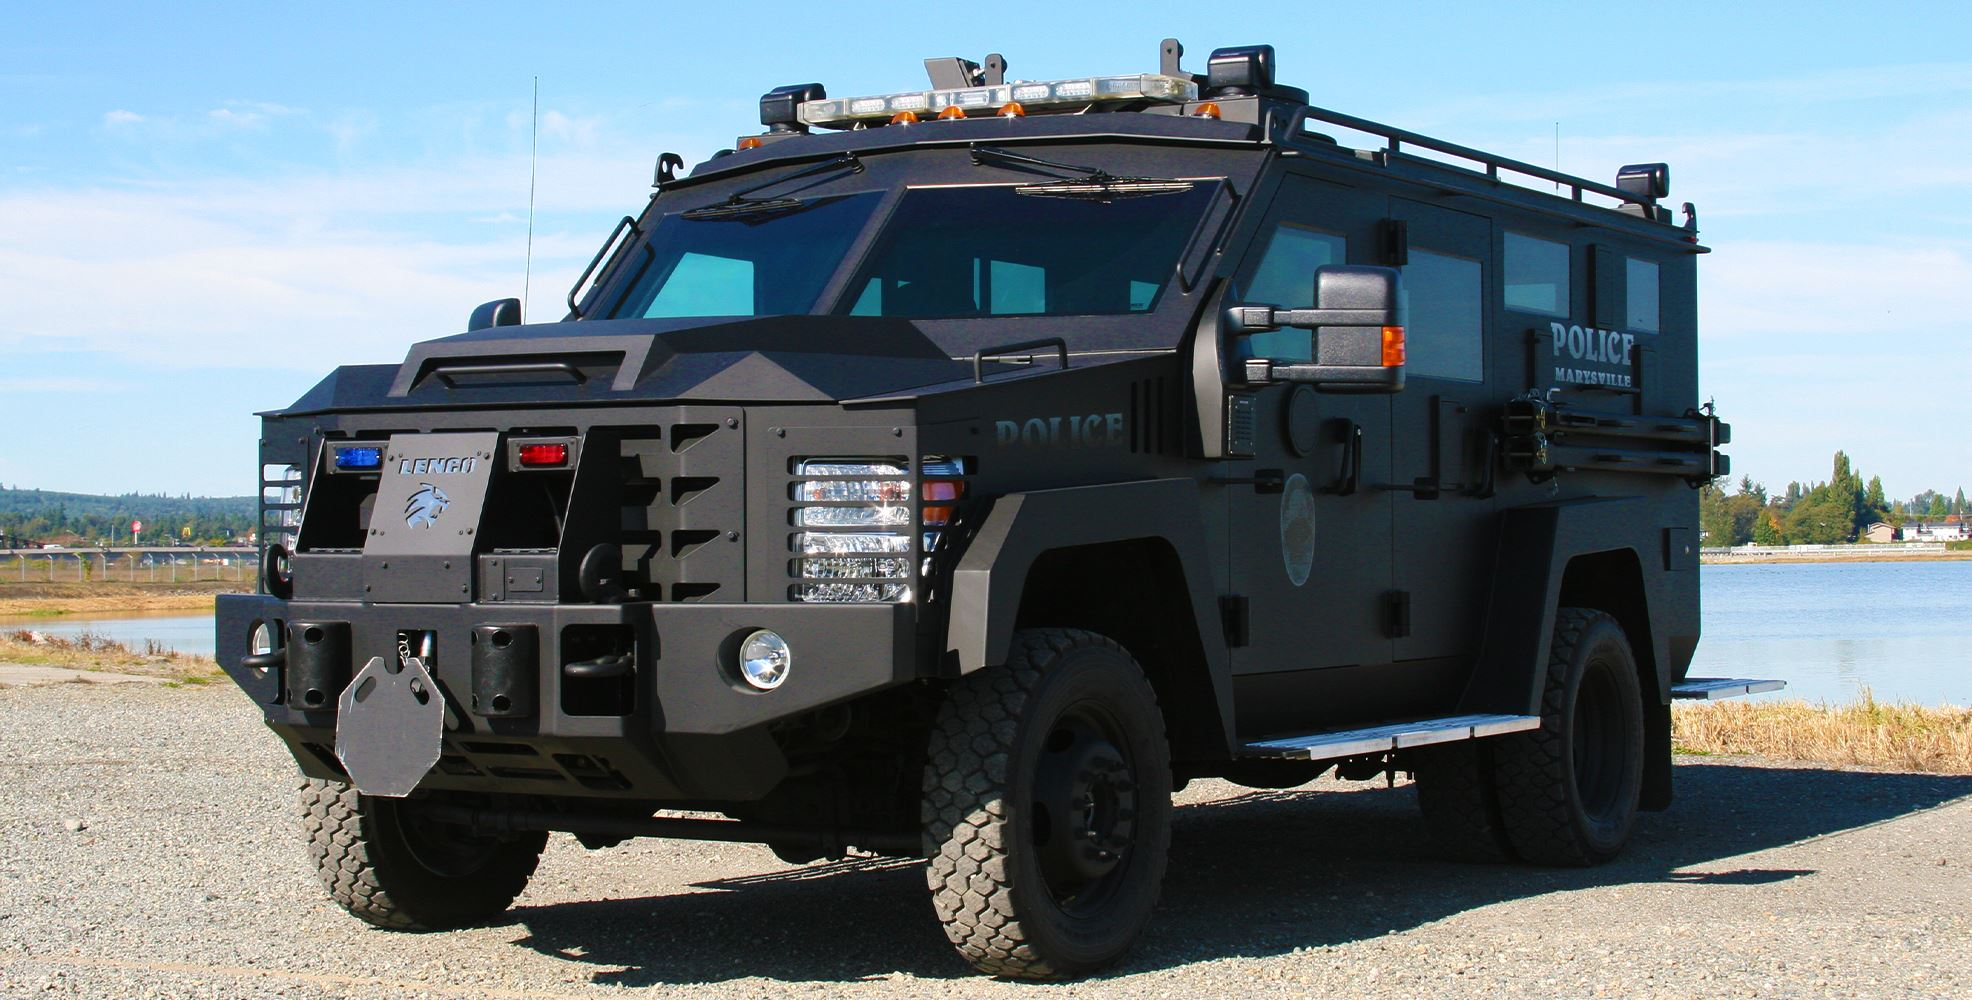 The Bearcat, an armored vehicle used by the Tactical Response and Crisis Negotiation Teams